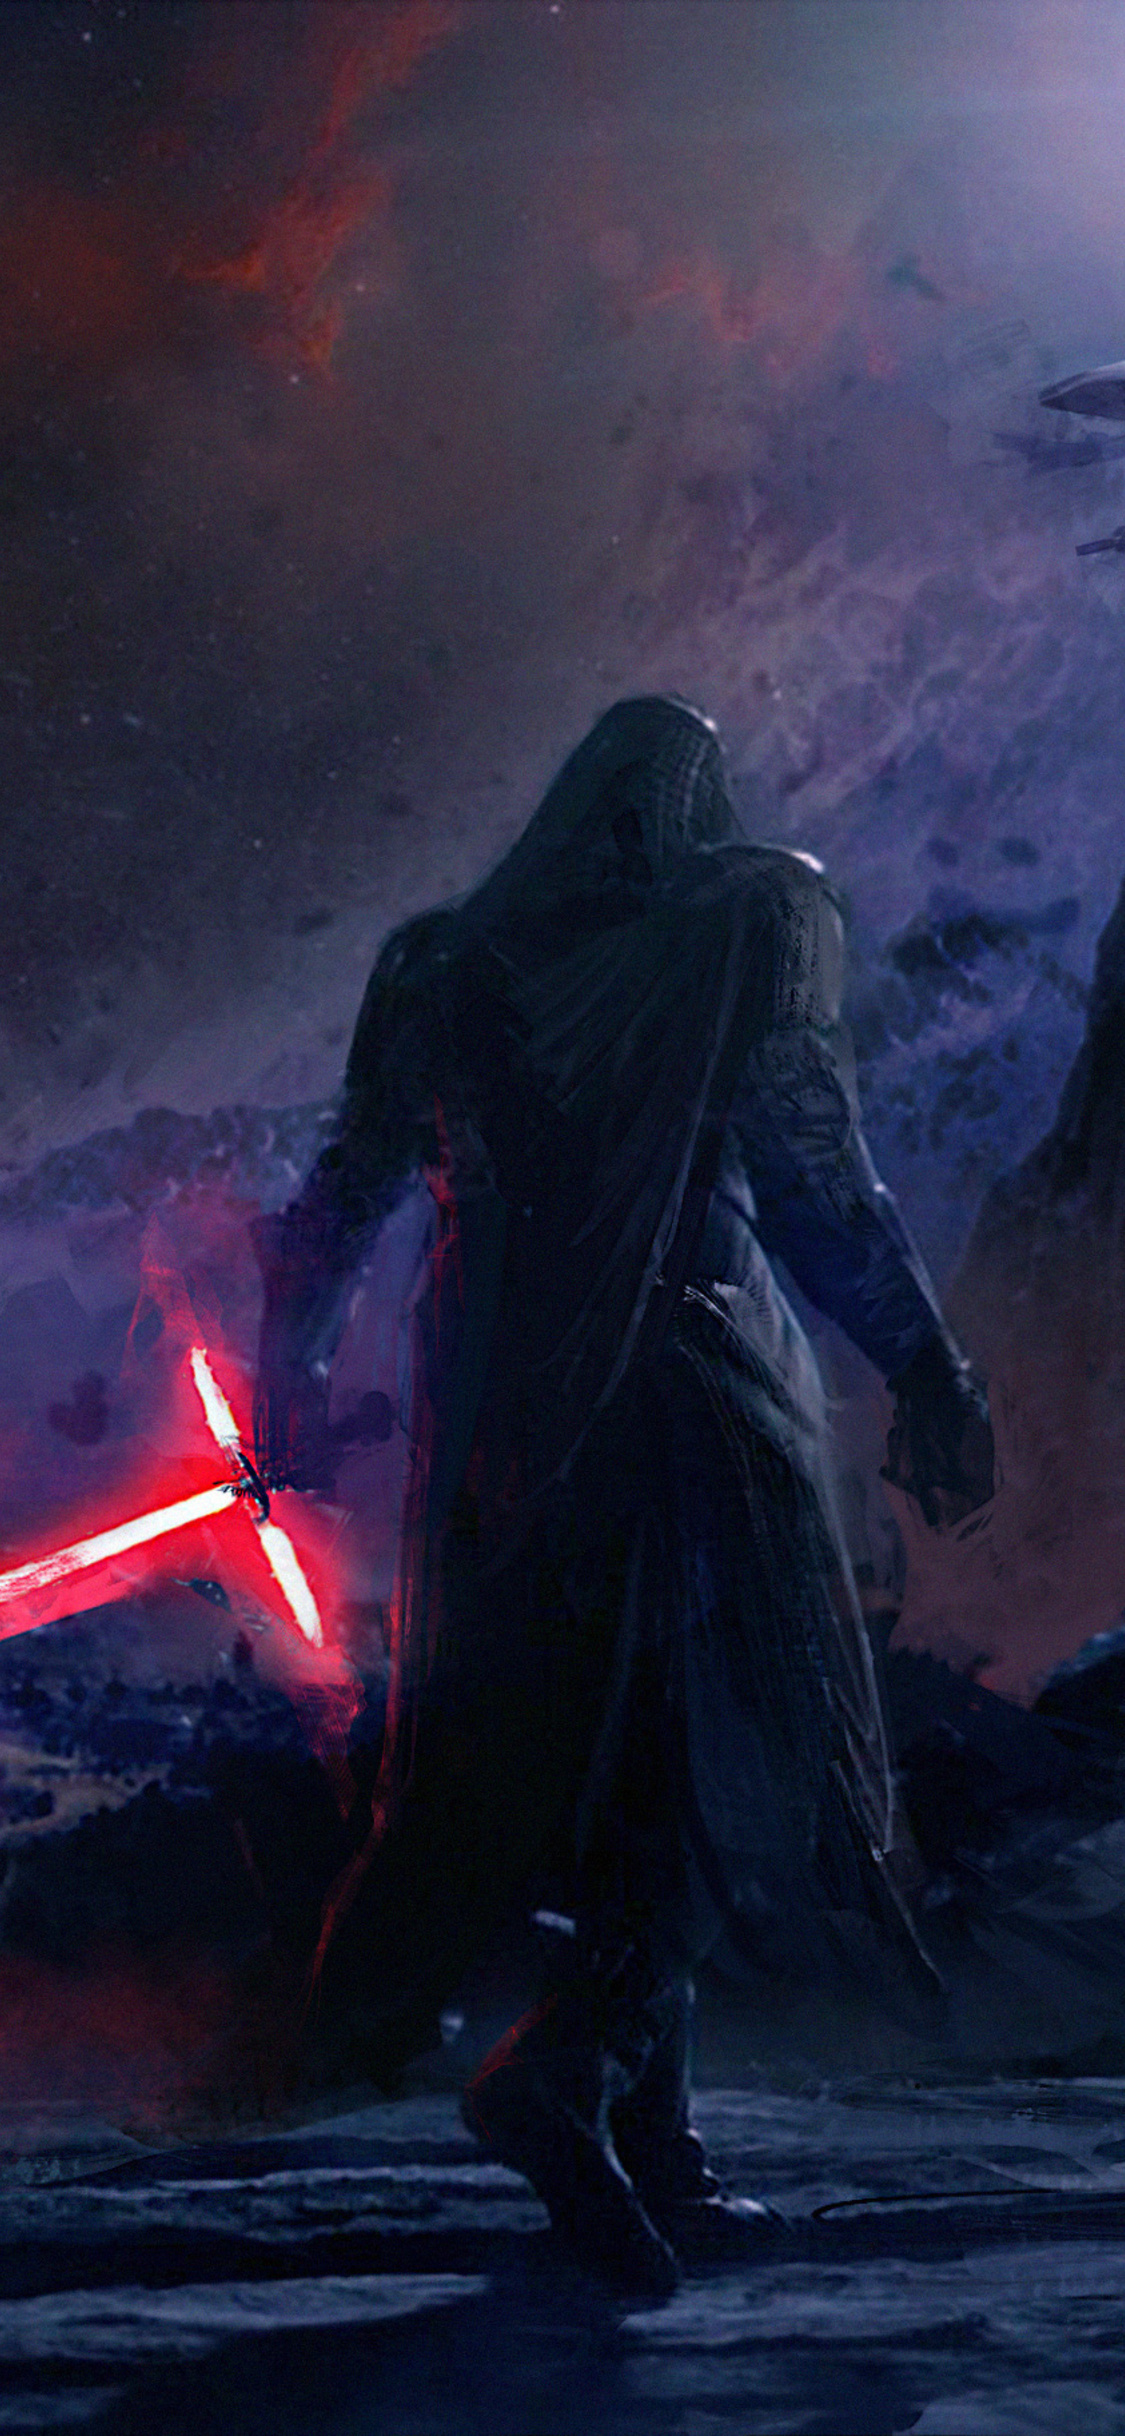 1125x2436 Kylo Ren Star Wars Artwork 4k Iphone Xs Iphone 10 Iphone X